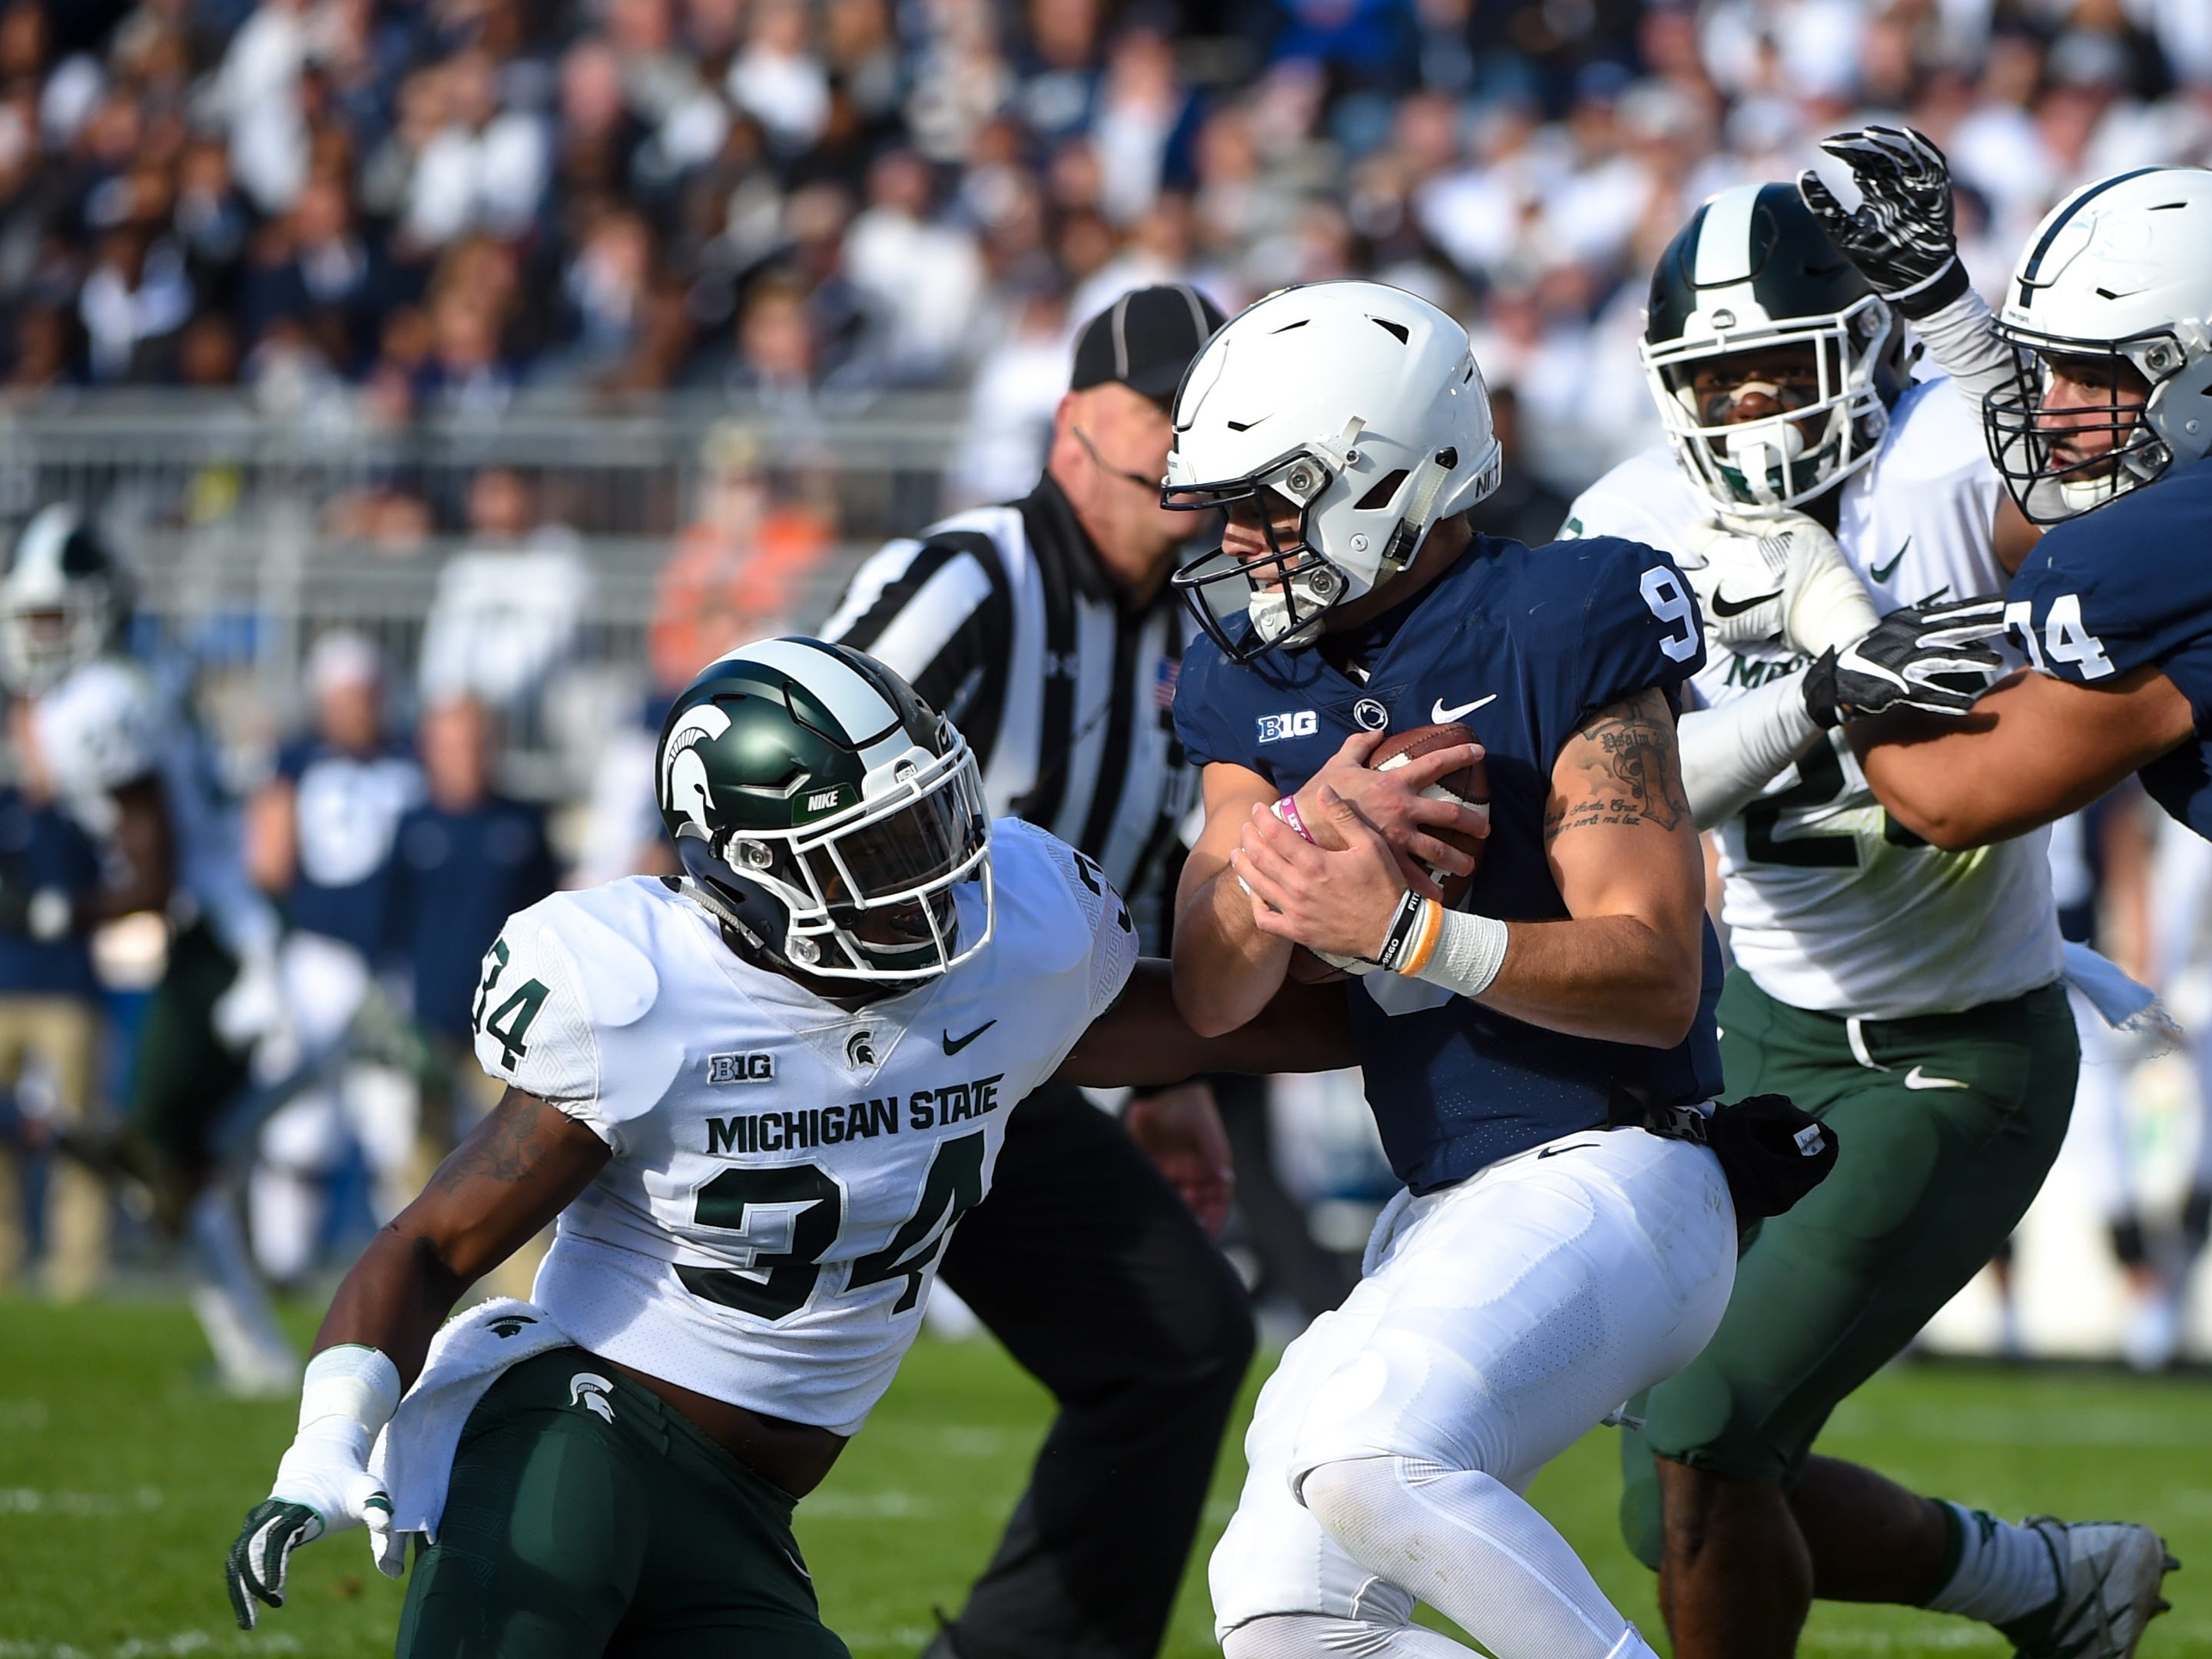 Trace McSorley (9) braces himself for the tackle during the Penn State Homecoming game against Michigan State, October 13, 2018. The Nittany Lions fell to the Spartans 17-21.